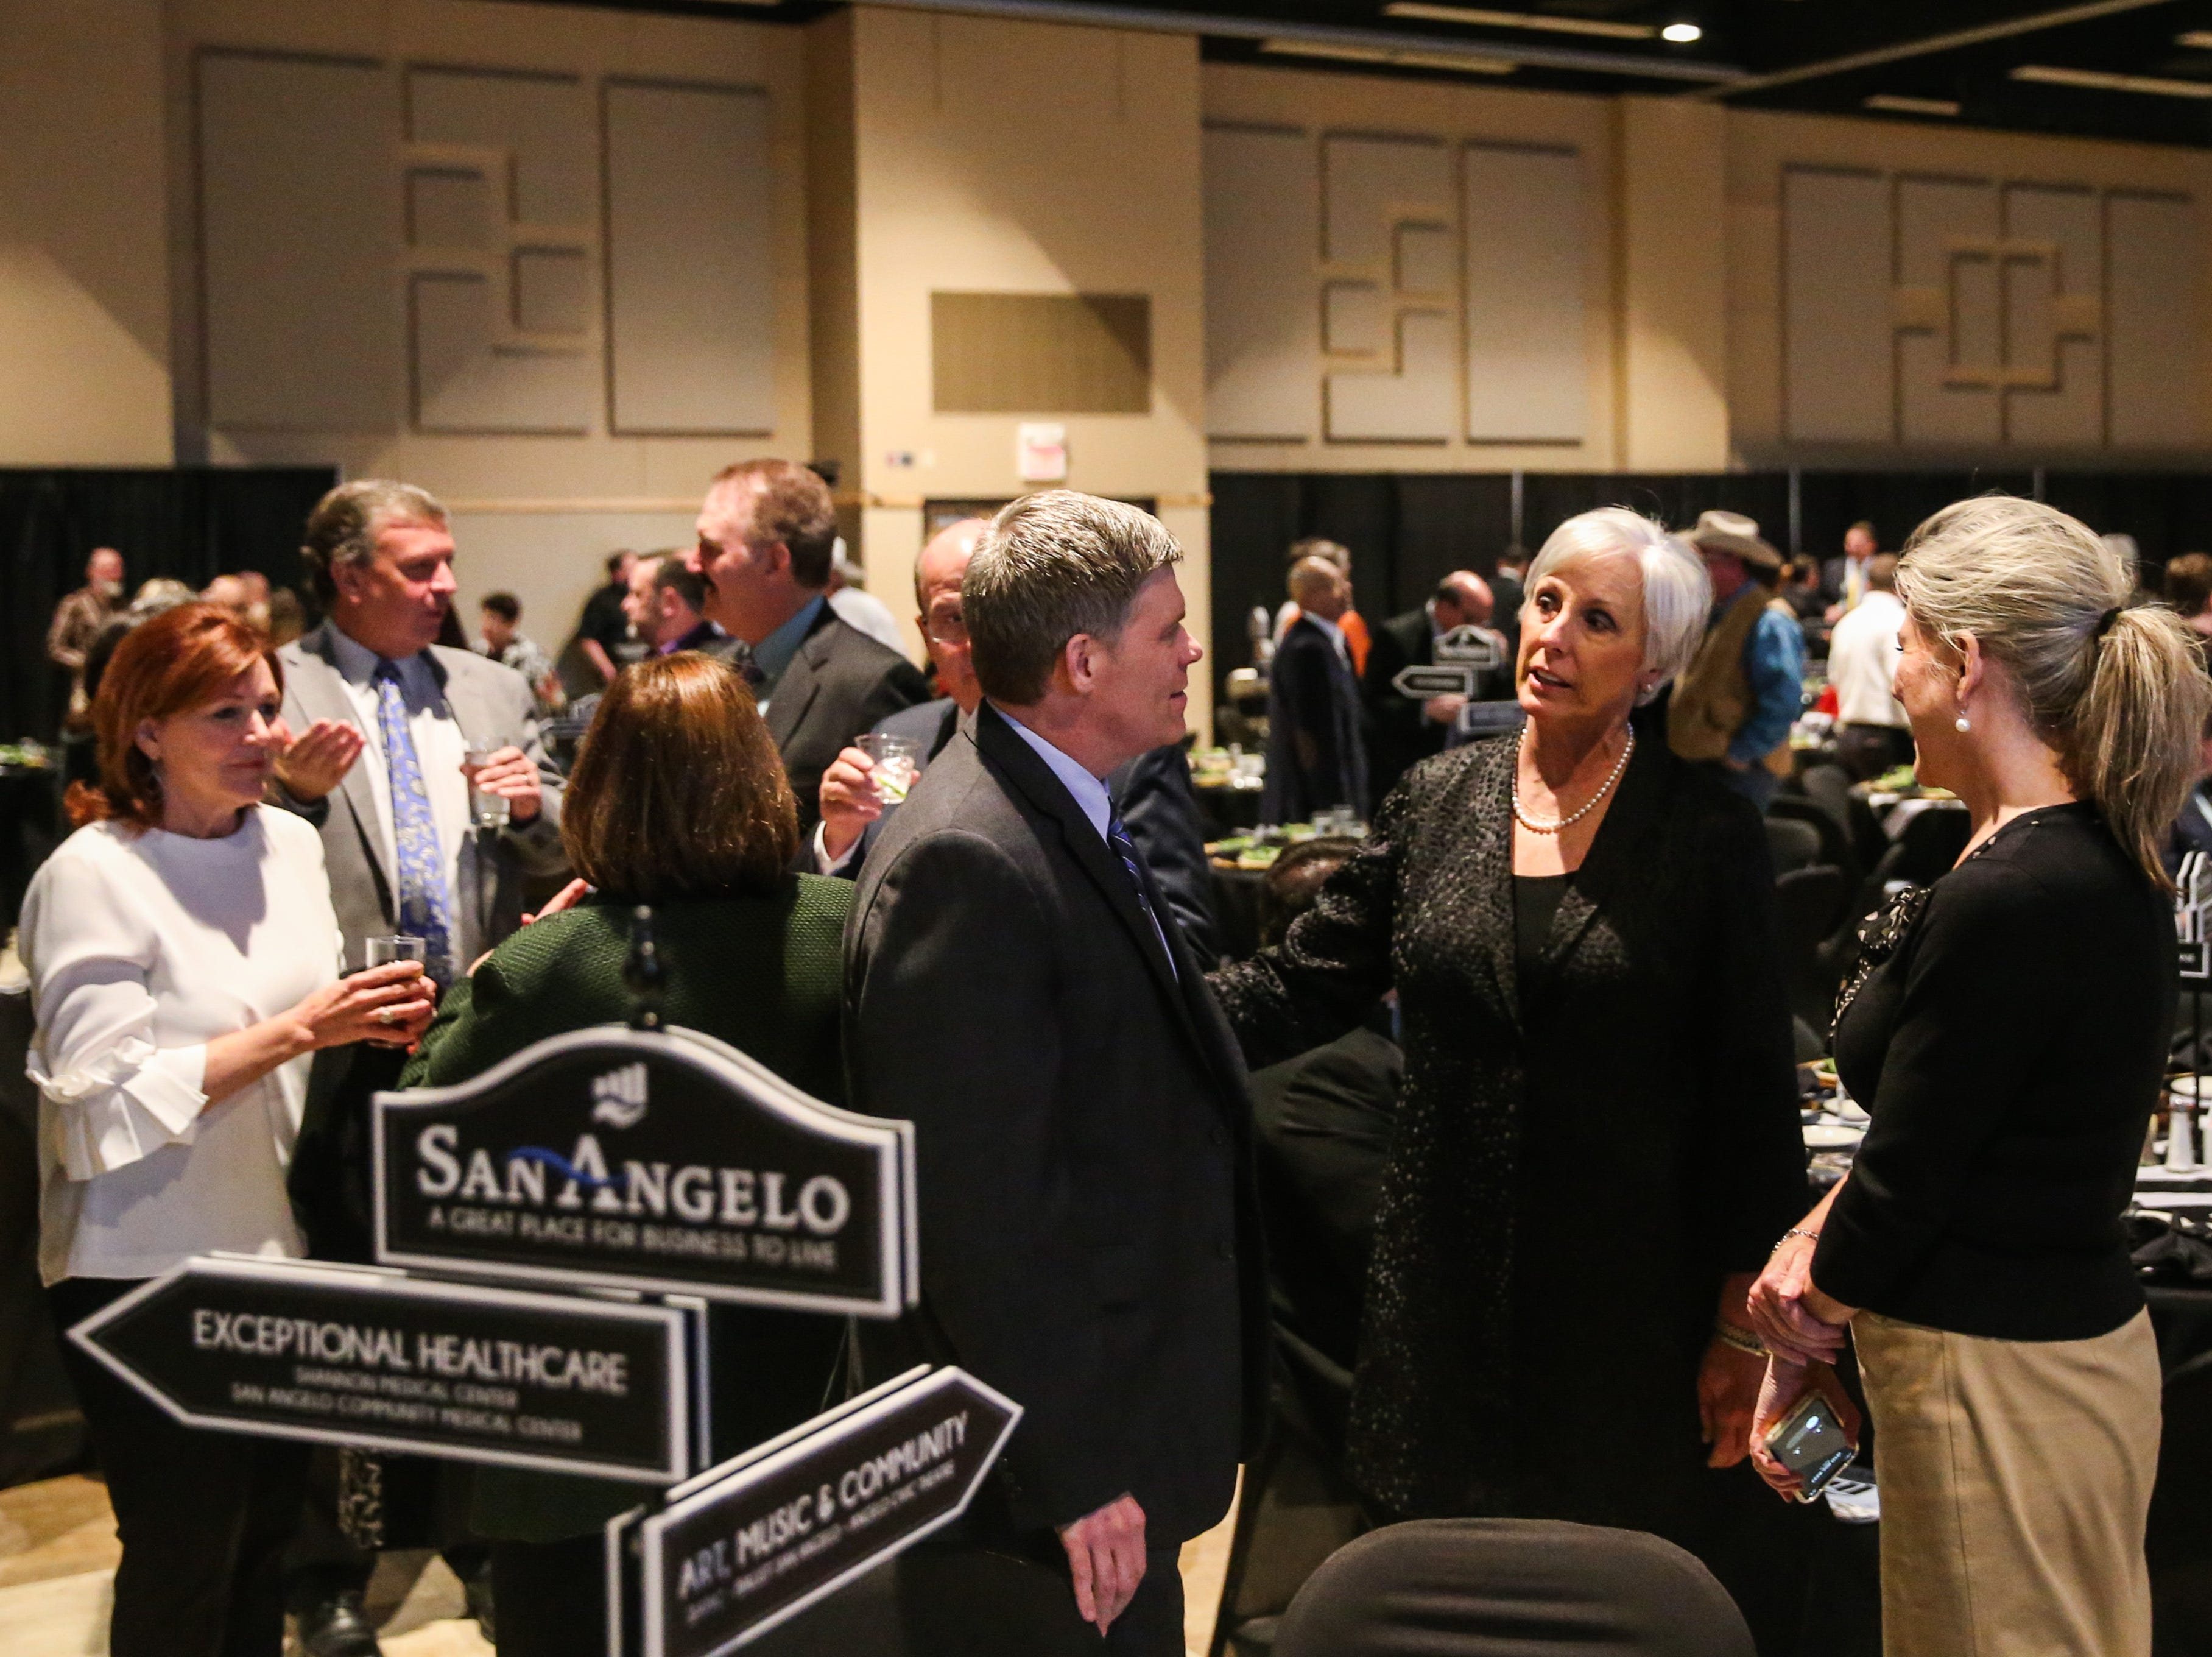 People mingle before the San Angelo Chamber of Commerce Annual Banquet Thursday, Jan. 24, 2019, at McNease Convention Center.